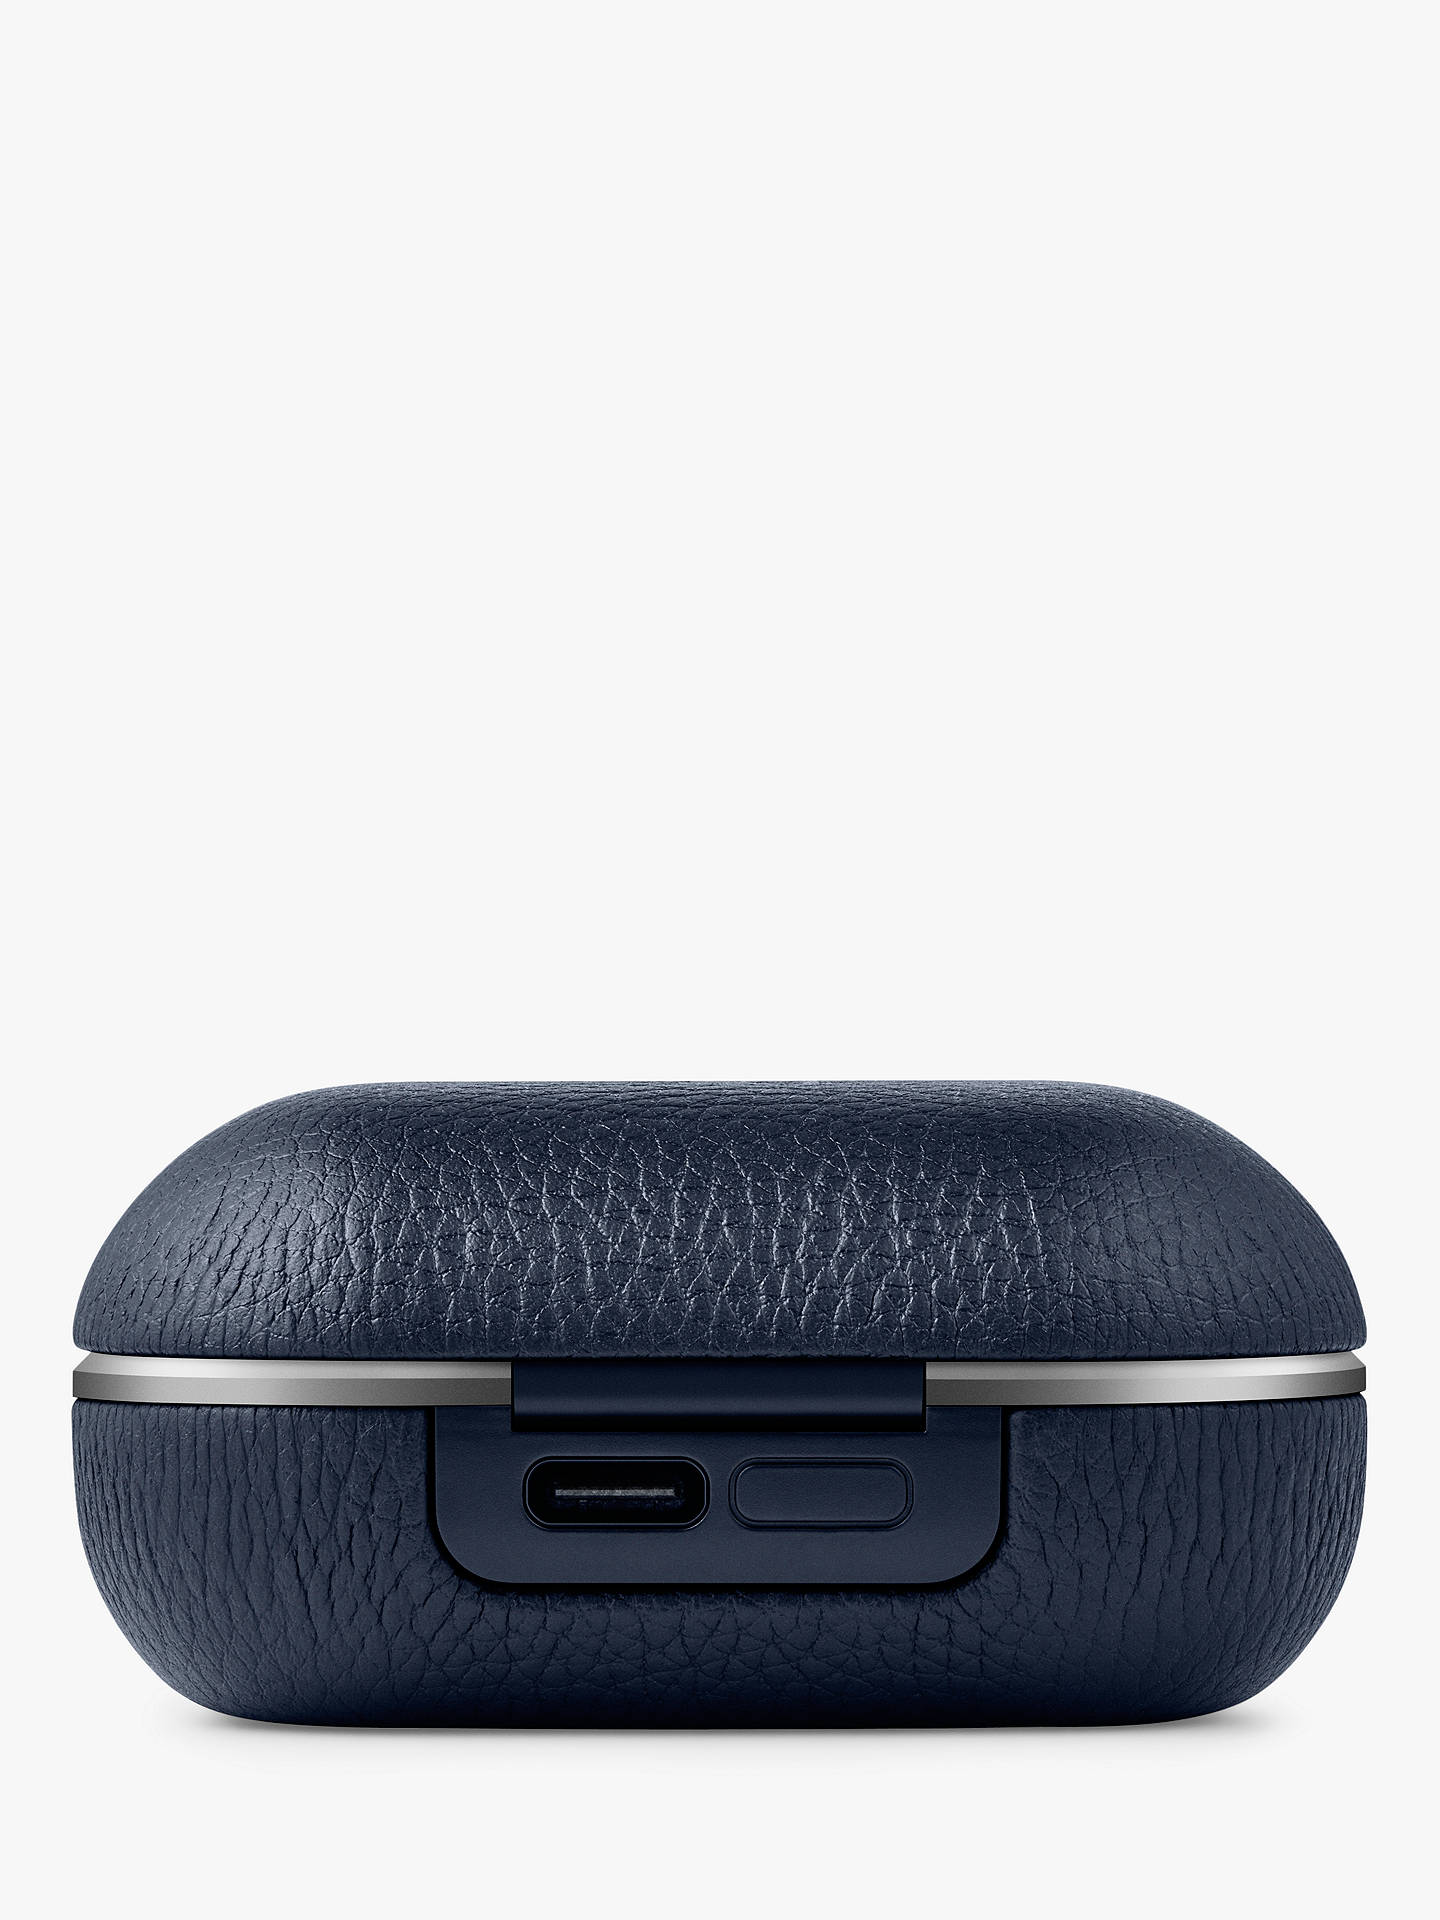 Bang & Olufsen Beoplay E8 2 0 True Wireless Bluetooth In-Ear Headphones  with Mic/Remote, Indigo Blue